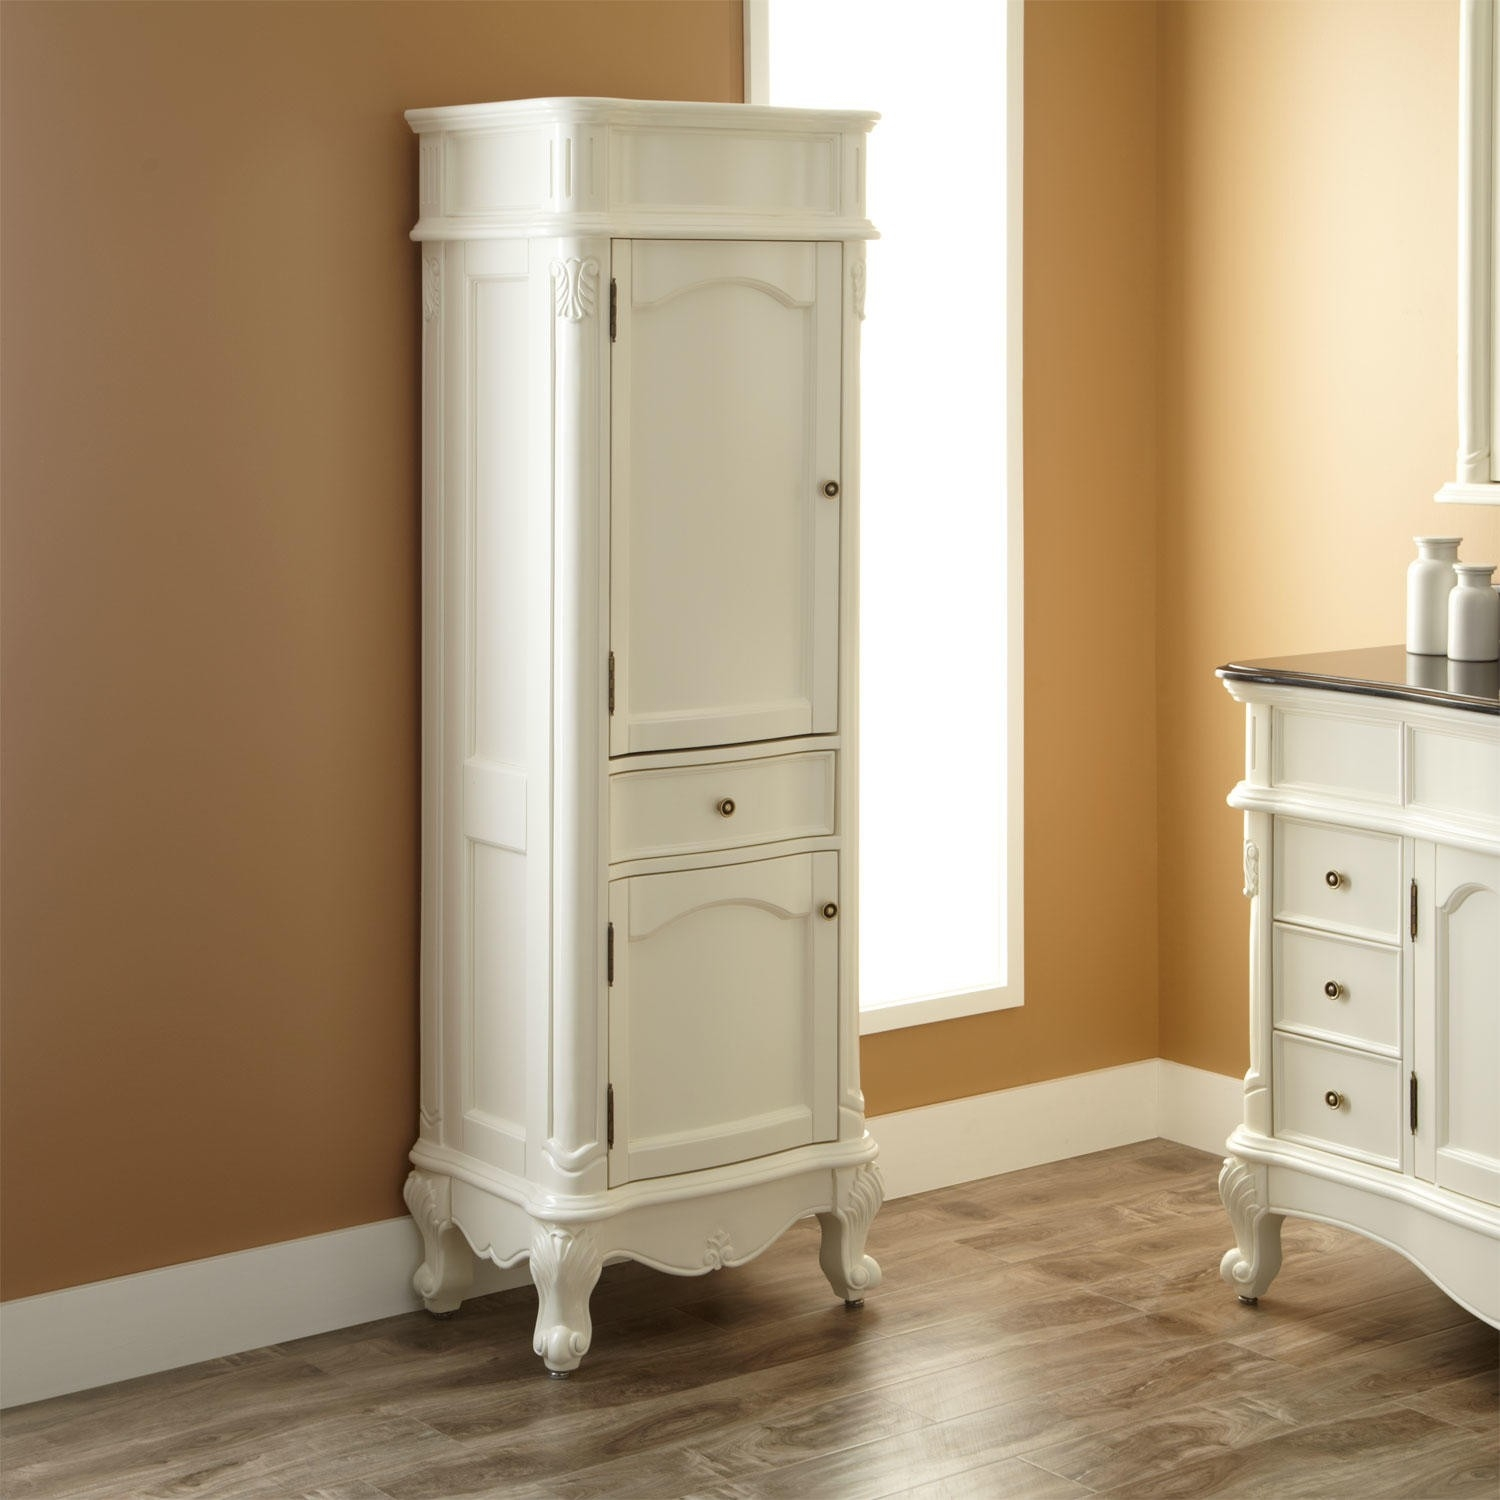 Freestanding Bathroom Linen Cabinet